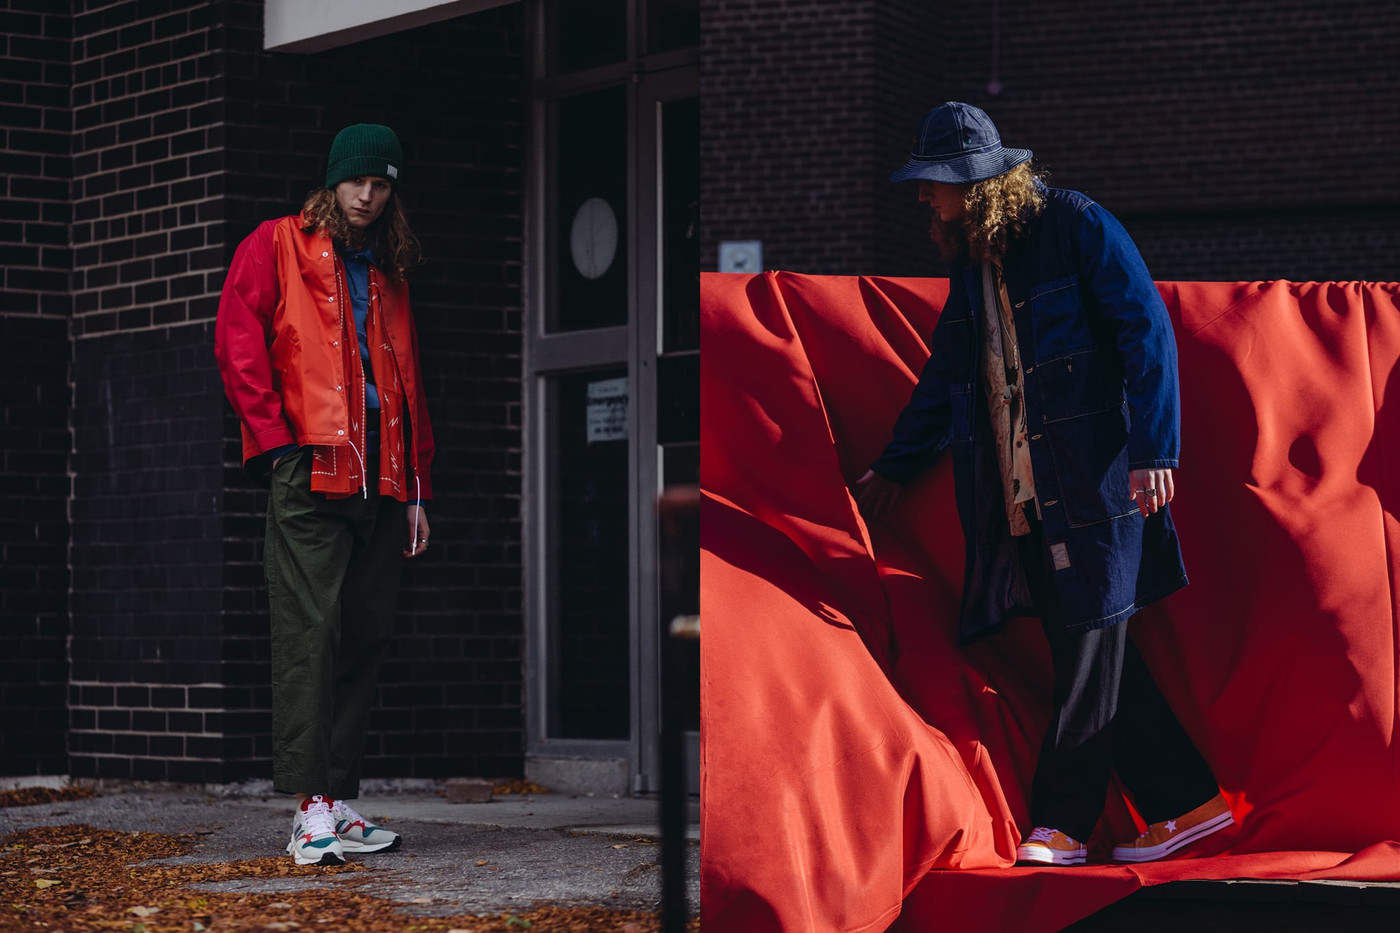 """HAVEN Displays Their Latest FW18 Goods in Their New """"Like This Like That"""" Editorial"""